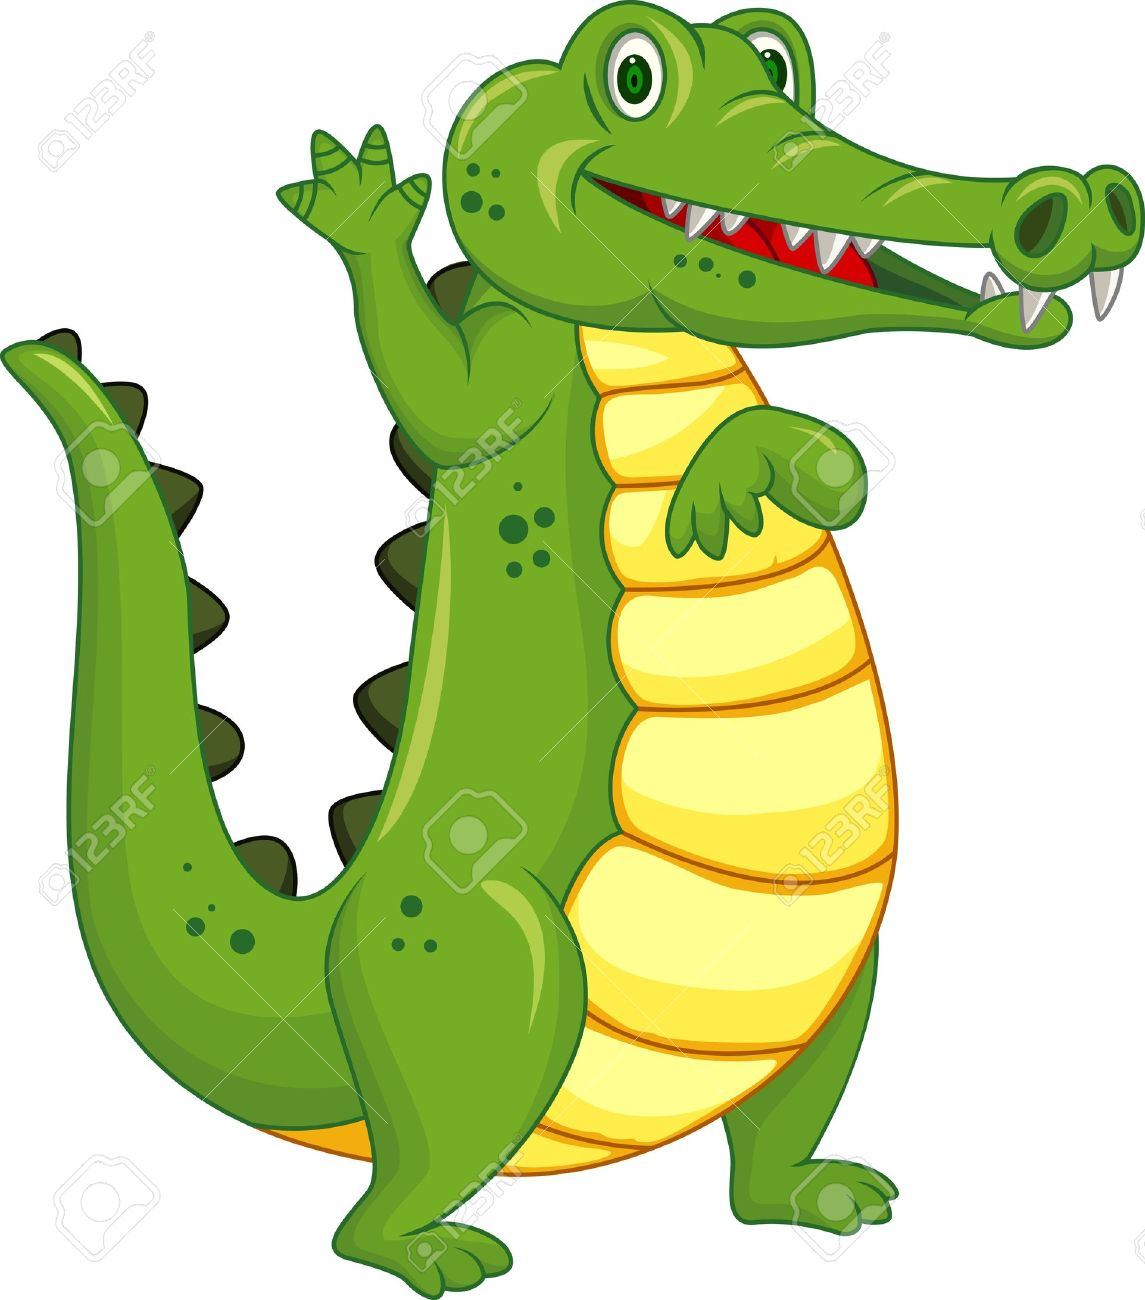 Image result for crocodile cartoon